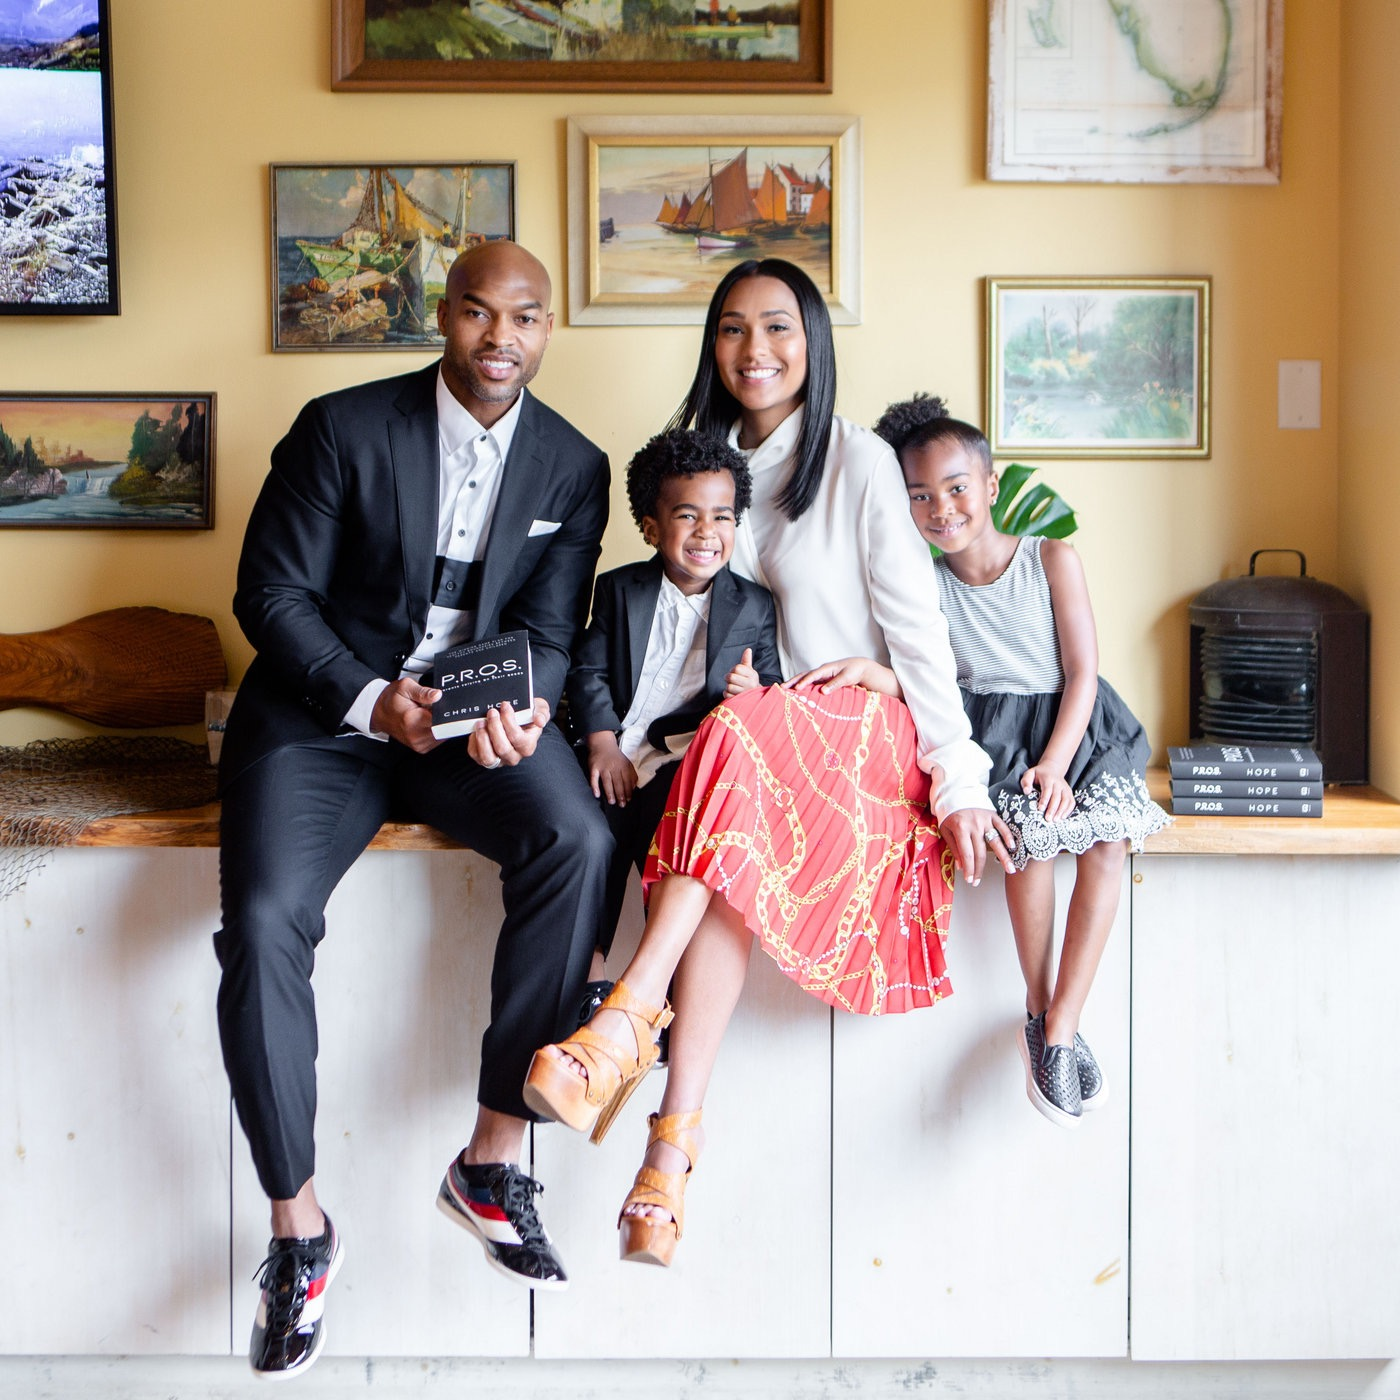 The Hope Family